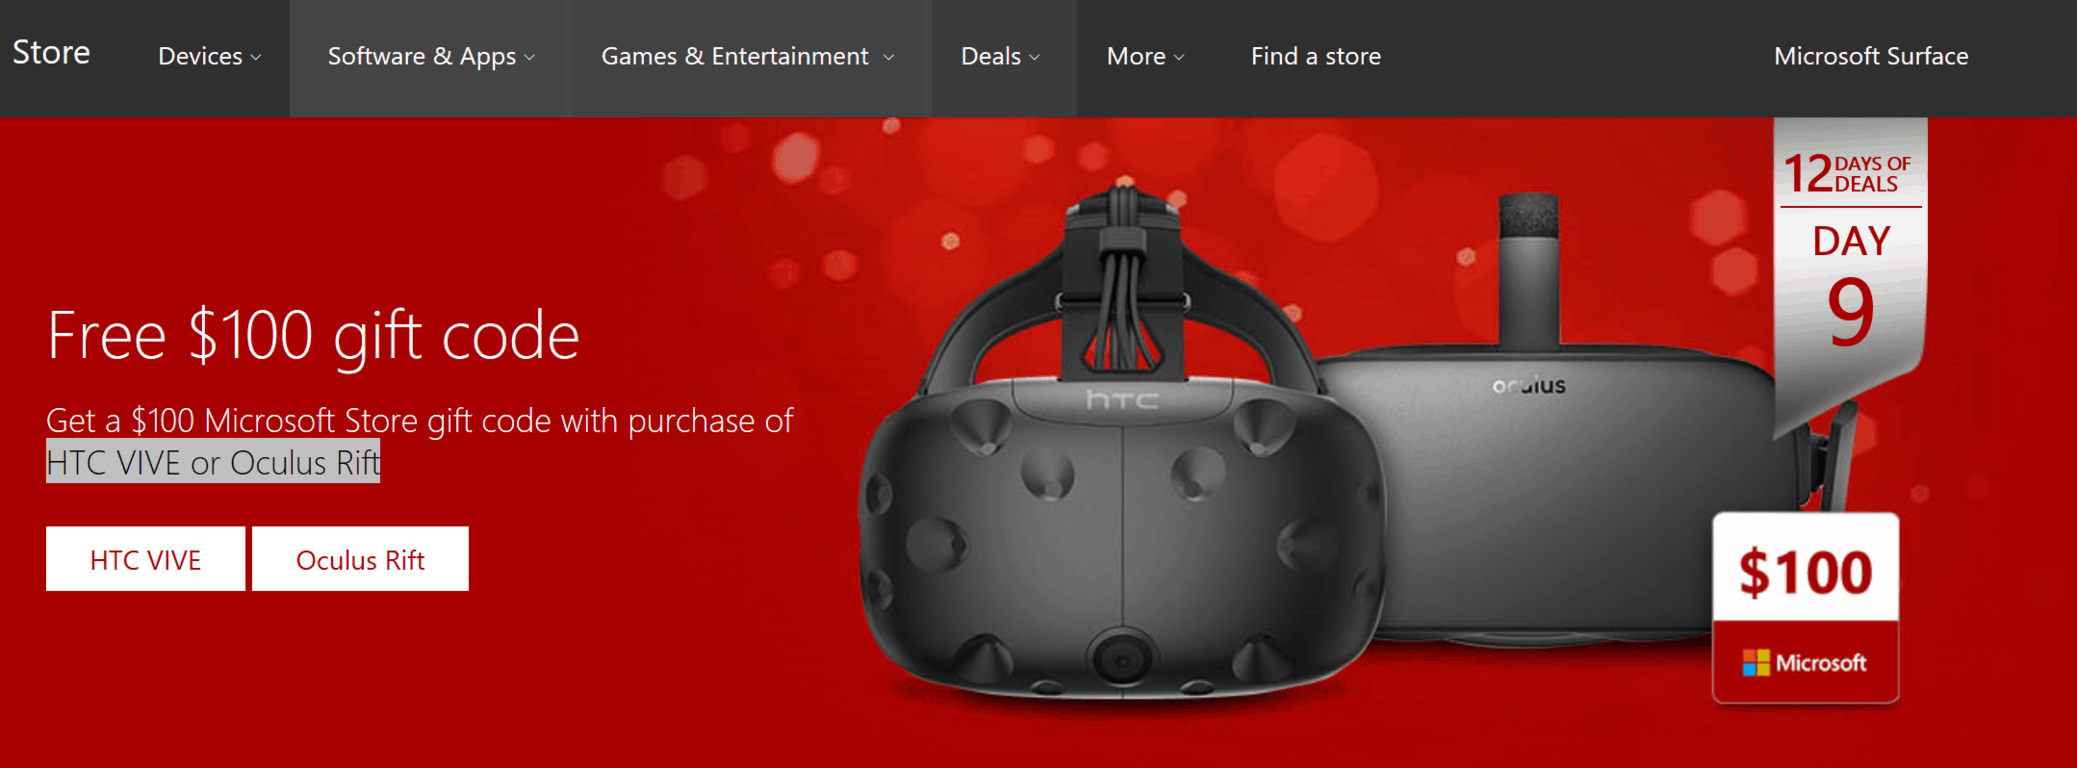 Microsoft's 12 days of deals continue, get a $100 microsoft store gift code with purchase of htc vive or oculus rift - onmsft. Com - december 13, 2016